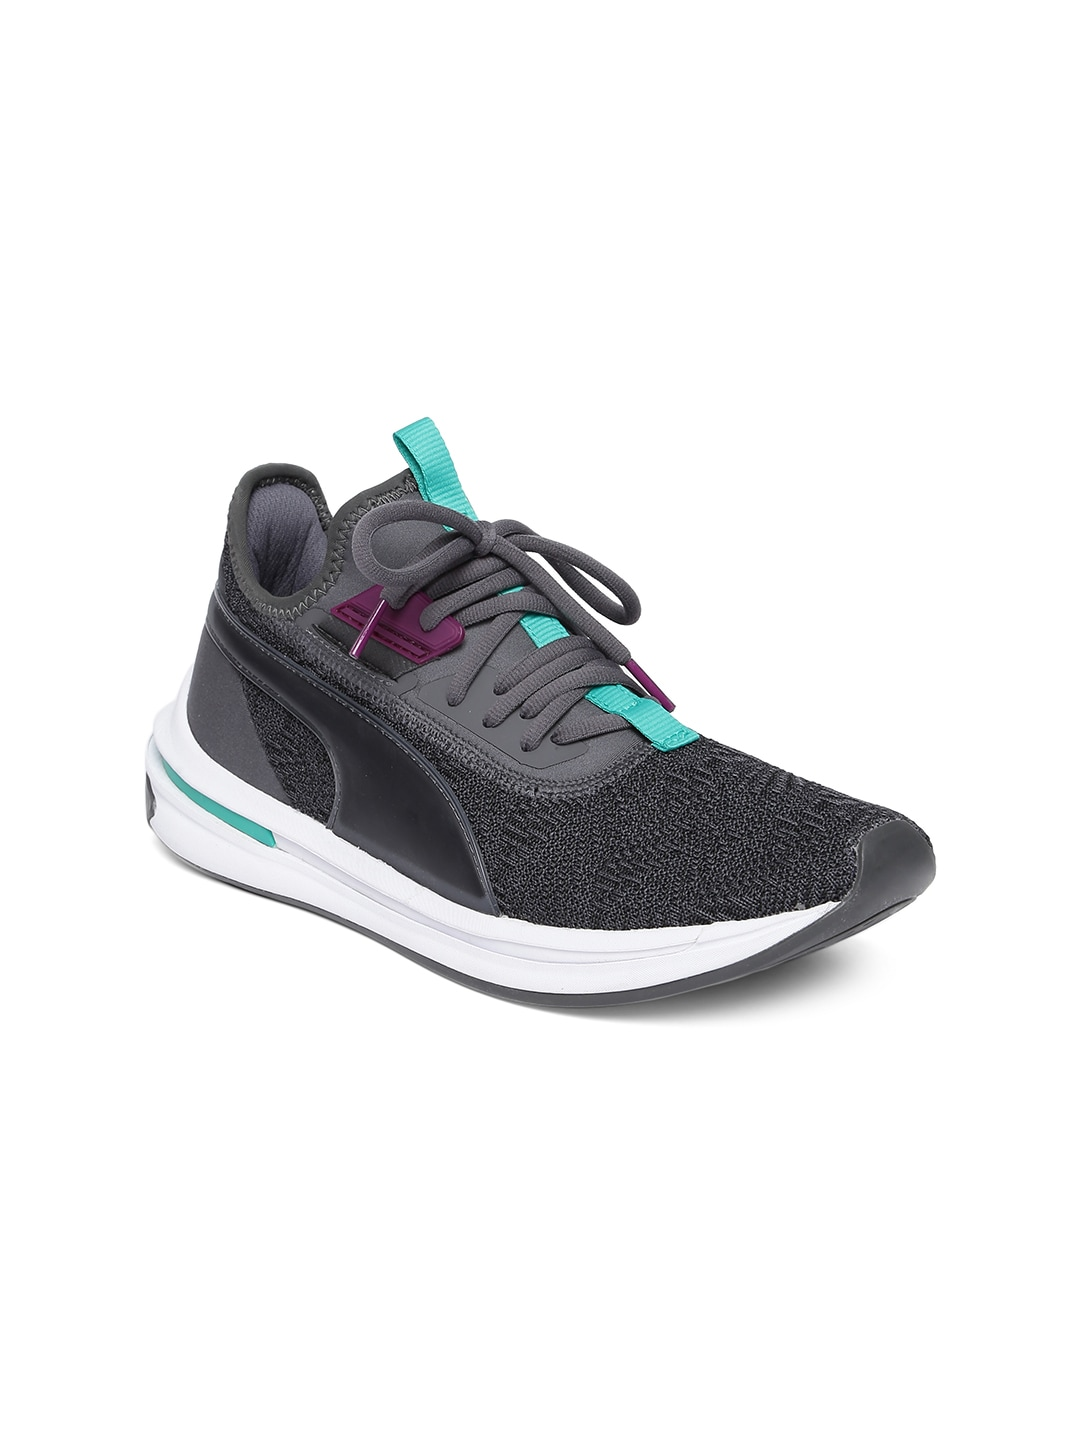 1ca1292eeee2bd Puma Limitless Ss 18 - Buy Puma Limitless Ss 18 online in India